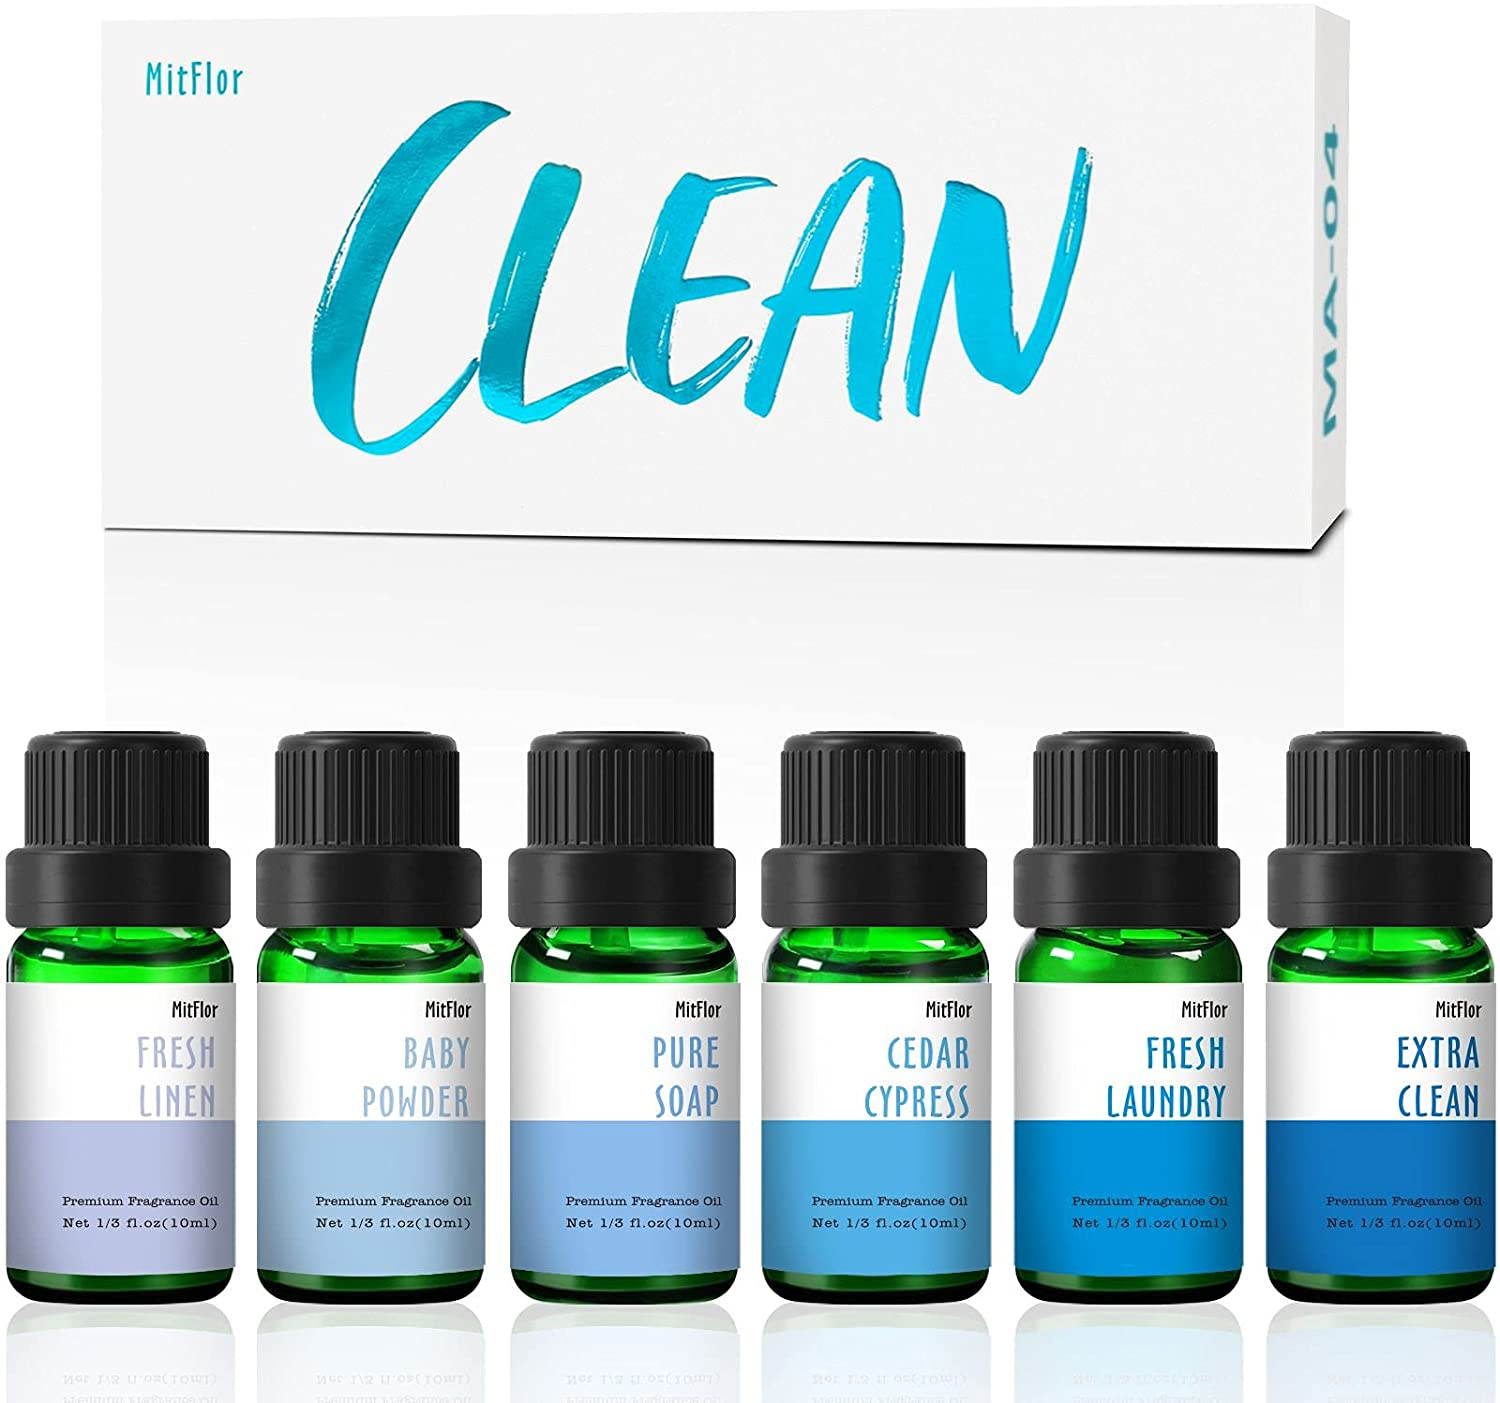 Fragrance Oils, MitFlor Clean Collection of Scented Oils, Refreshing Autumn Aromas, Essential Oils for Diffuser, Soap & Candle Making Scents, Baby Powder, Pure Soap, Fresh Laundry and More, 6x10ml